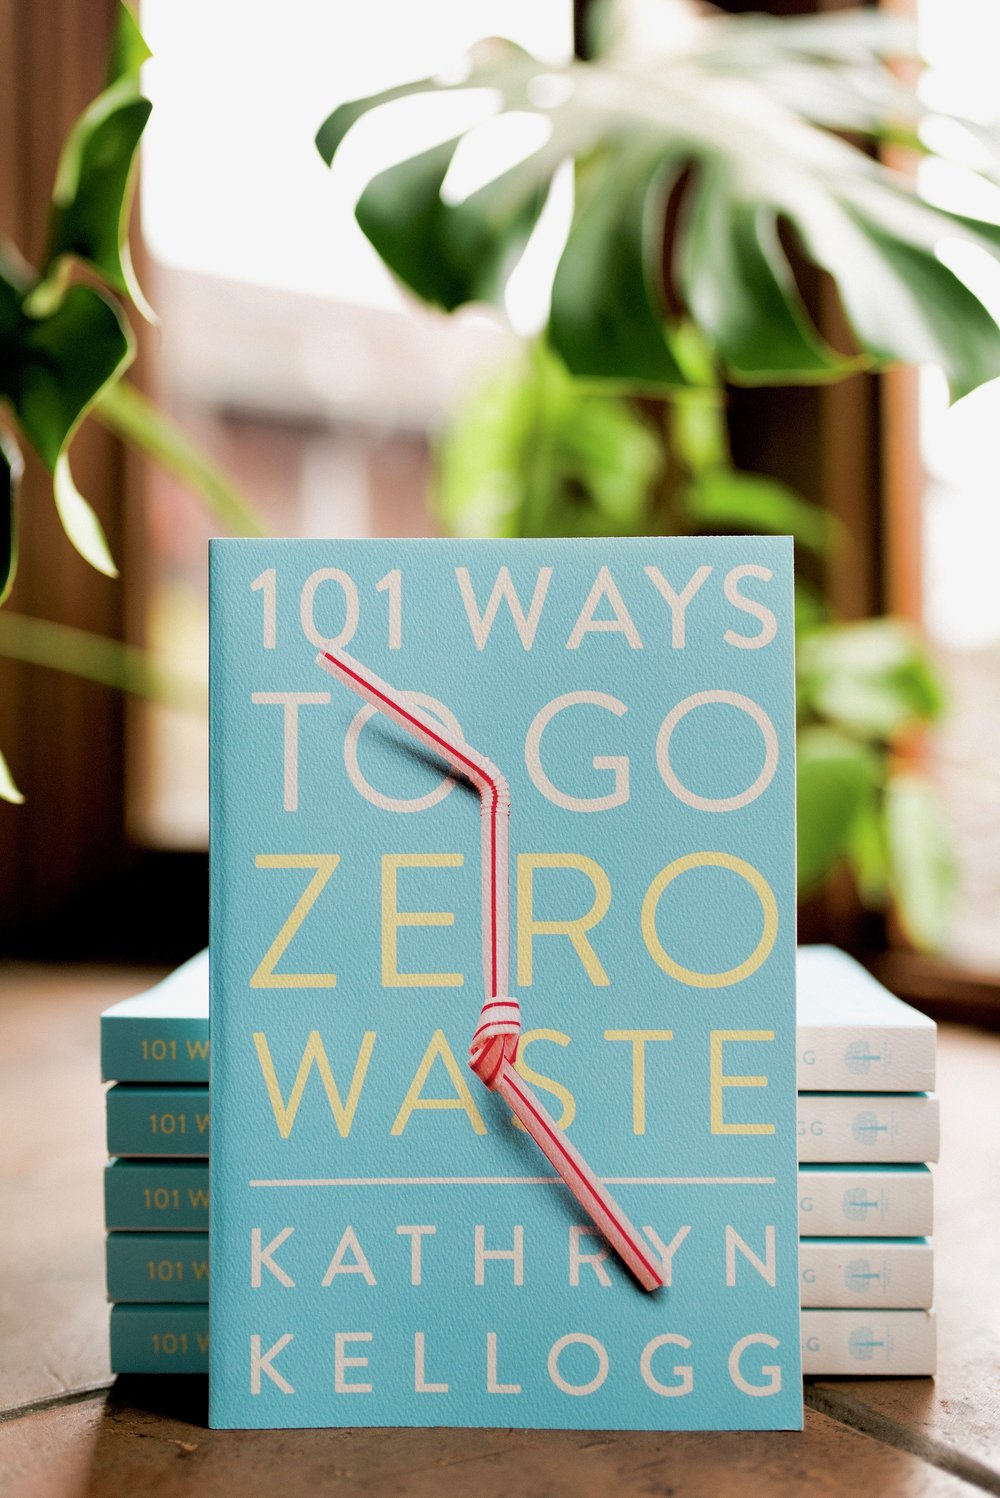 101 Ways to Go Zero Waste from www.goingzerowaste.com #zerowaste #ecofriendly #sustainable